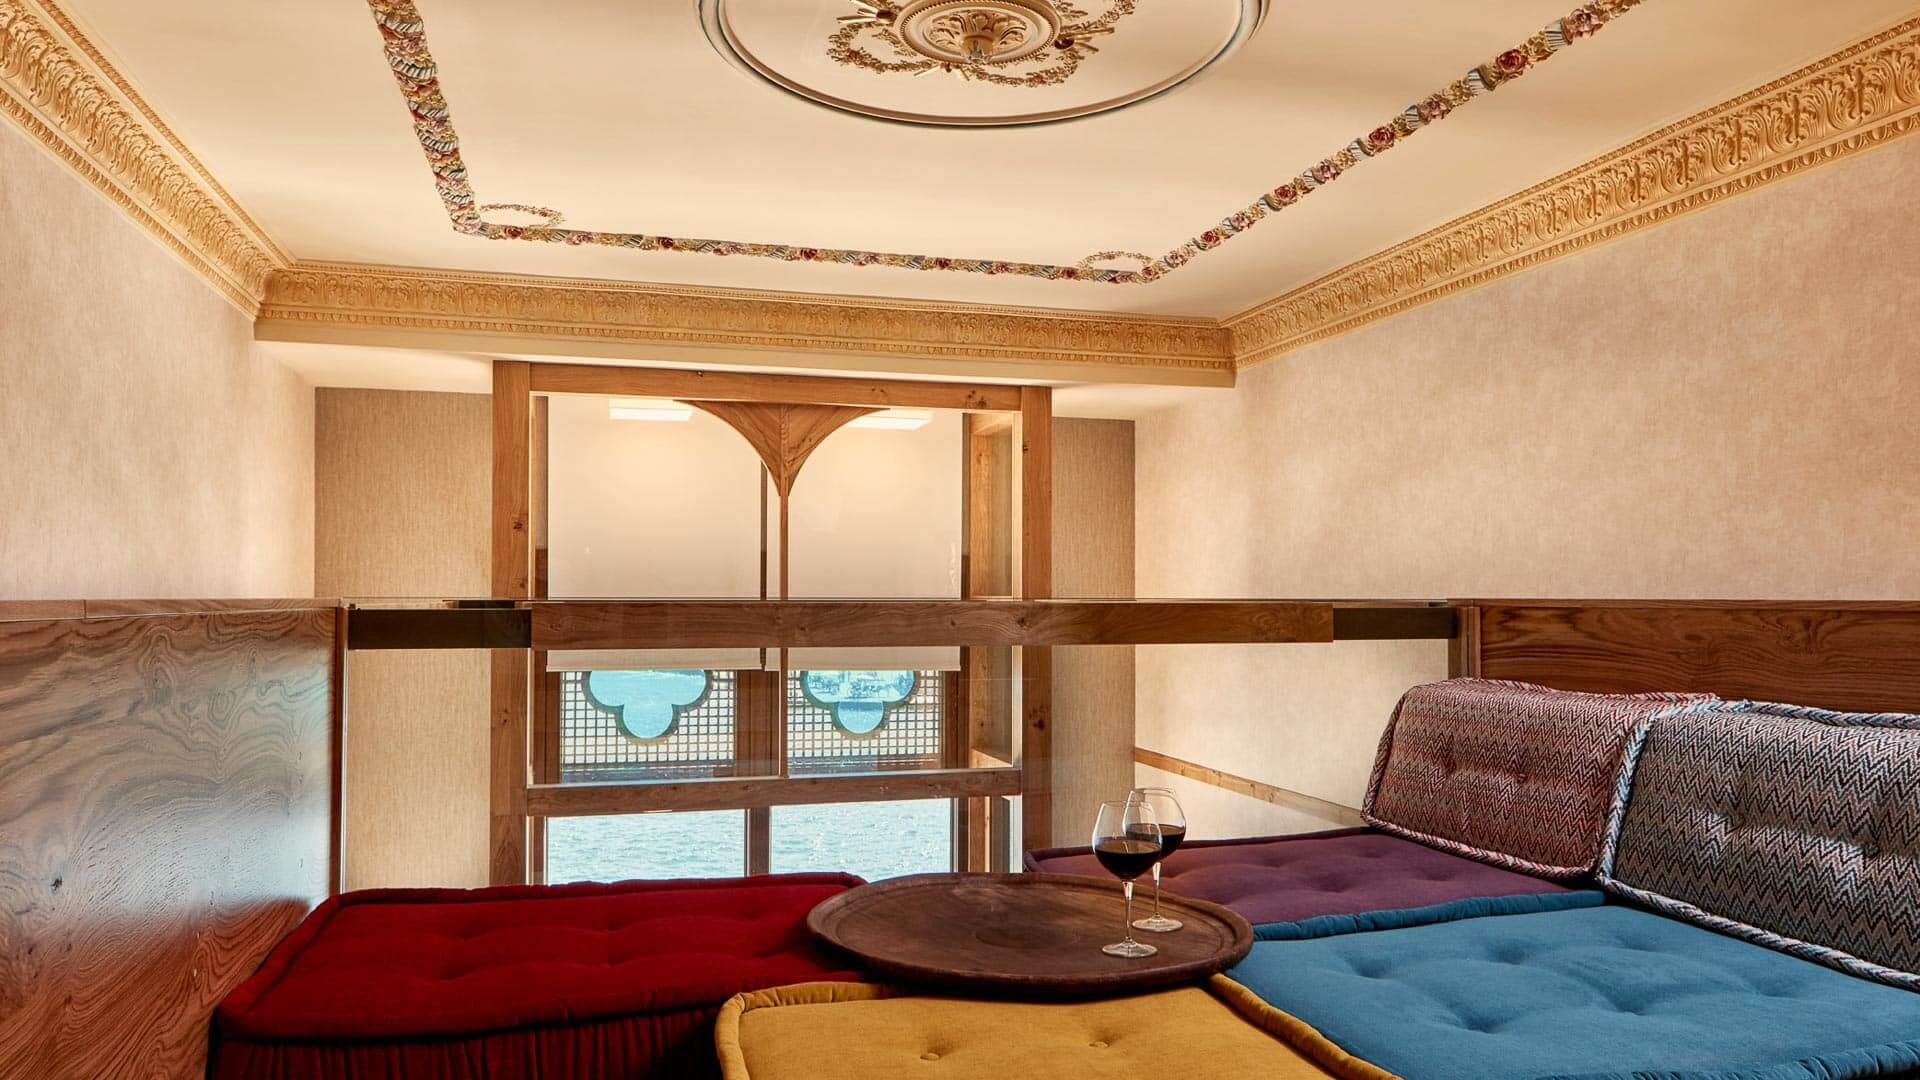 Loft space with sofa cushions in a luxury suite at the Domus Renier, a Chania Boutique Hotel